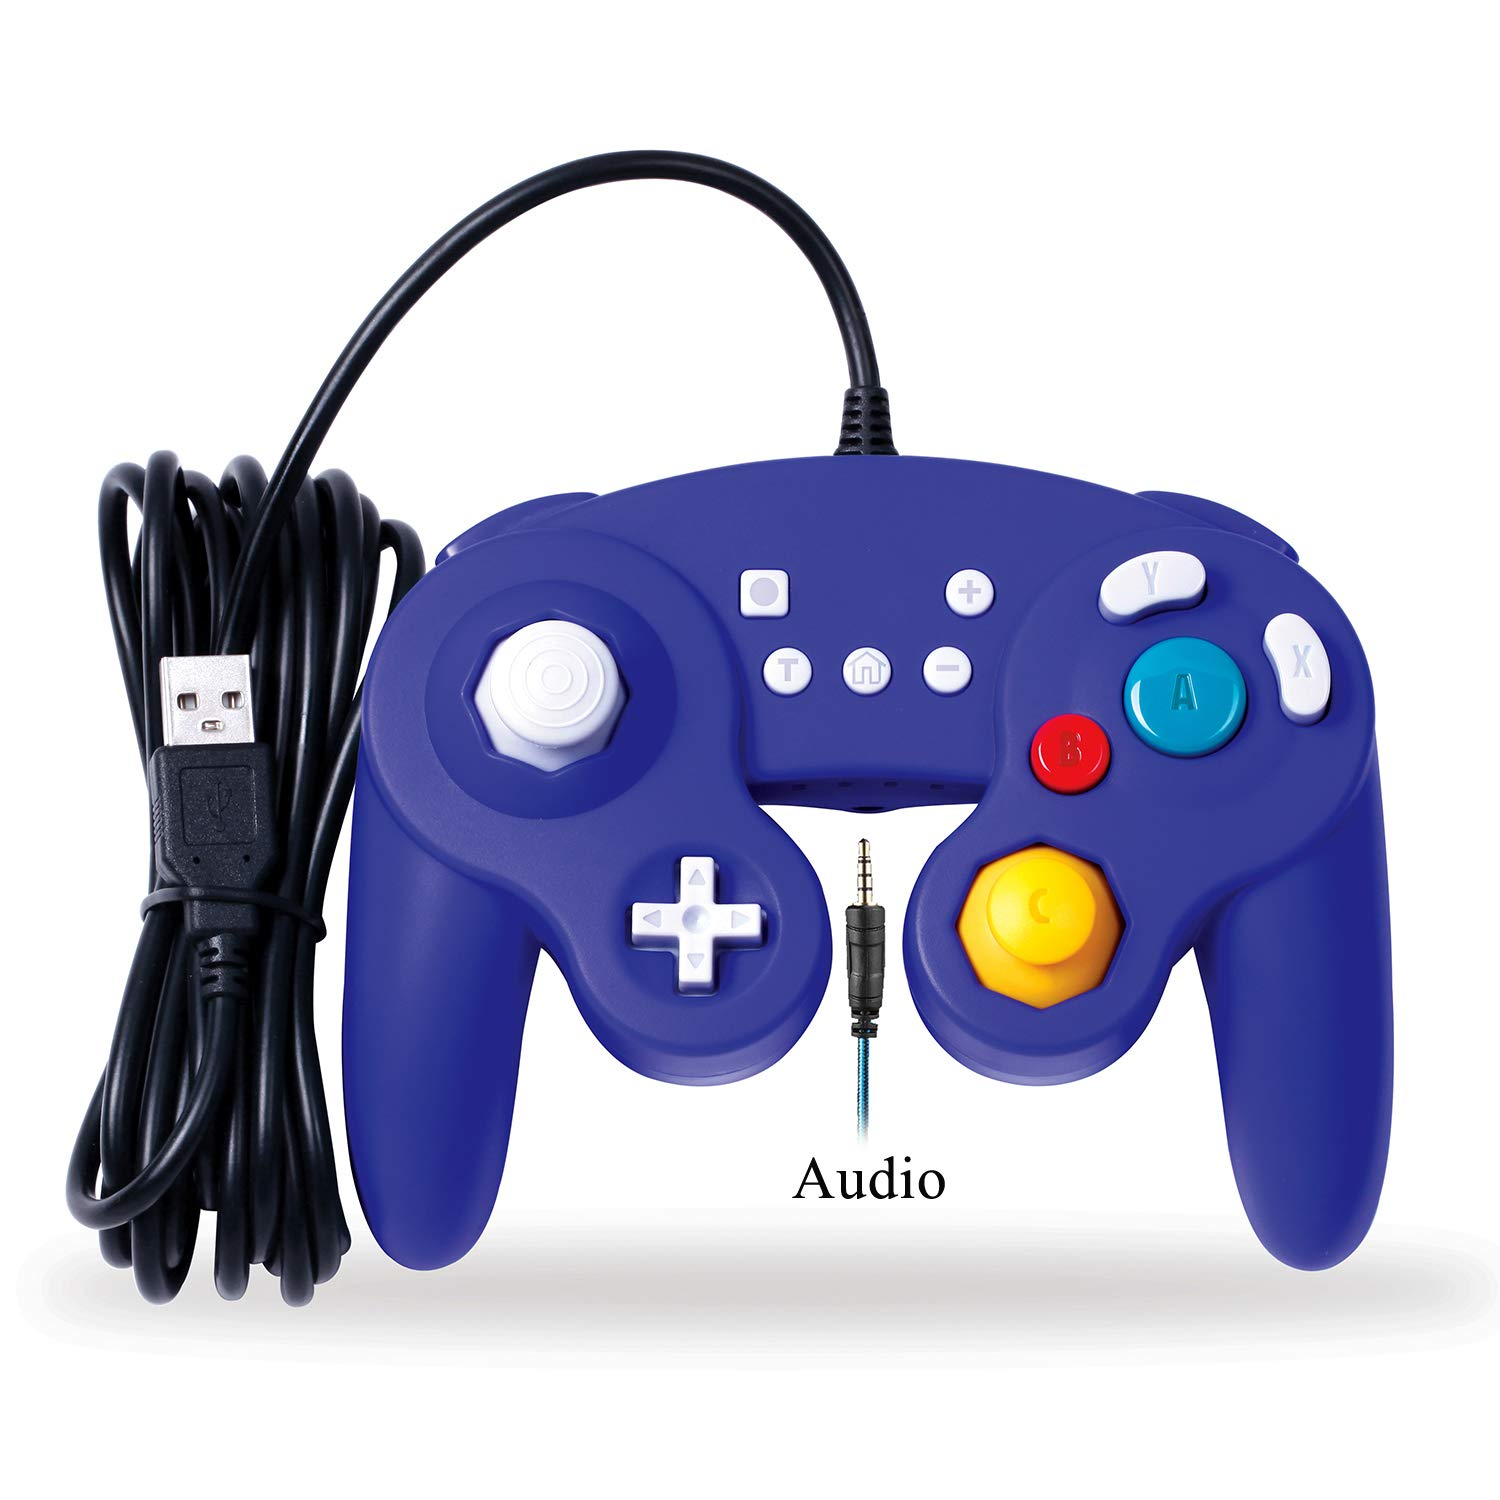 Review: Exlene Wired Gamecube Style Controller for Switch